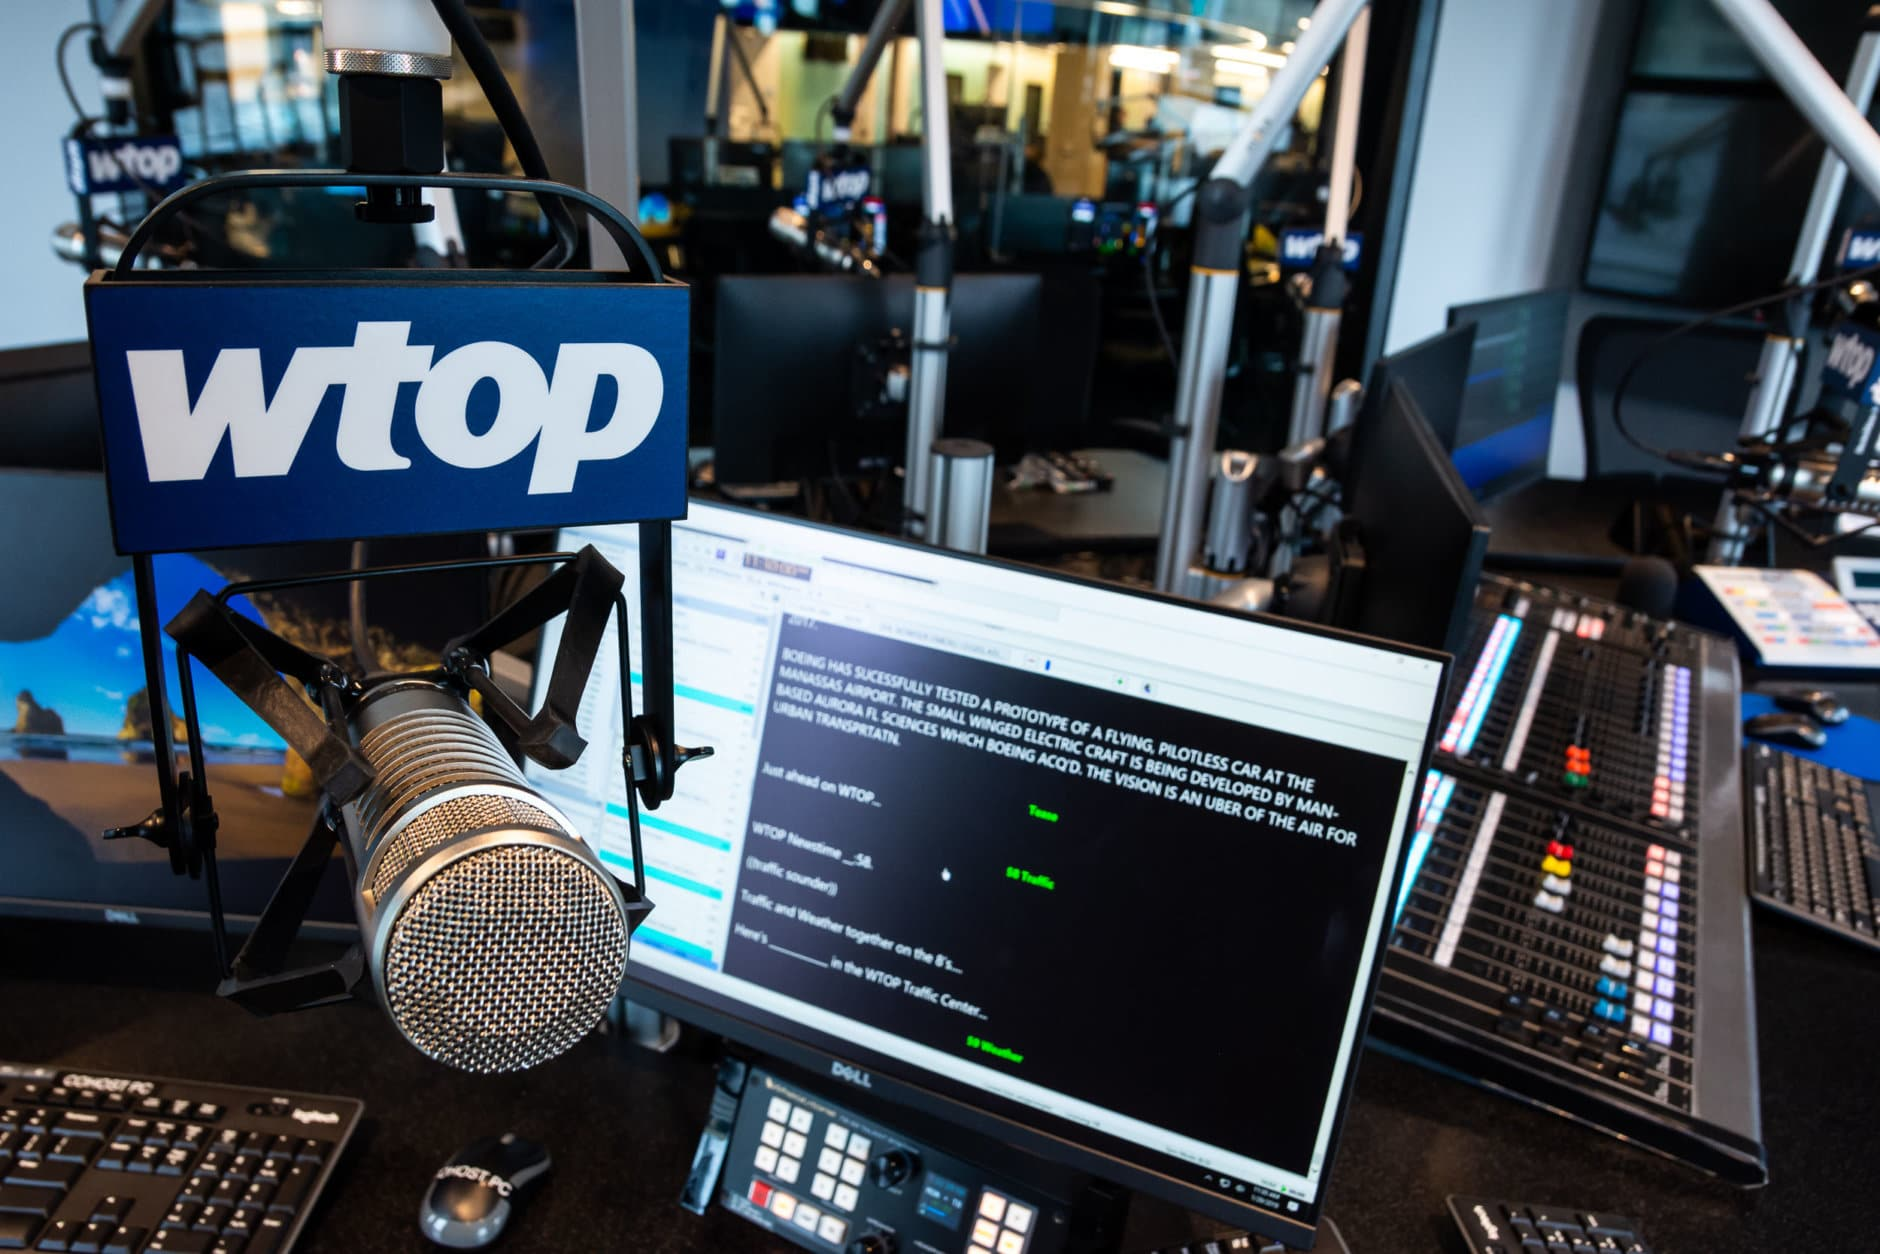 An co-host's station in the new Glass-Enclosed Nerve Center. Pictured is WTOP's news management software, Burli, with which radio editors feed scripts, audio clips and news reports to the anchors throughout the station's hour-long lineup. (WTOP/Alejandro Alvarez)